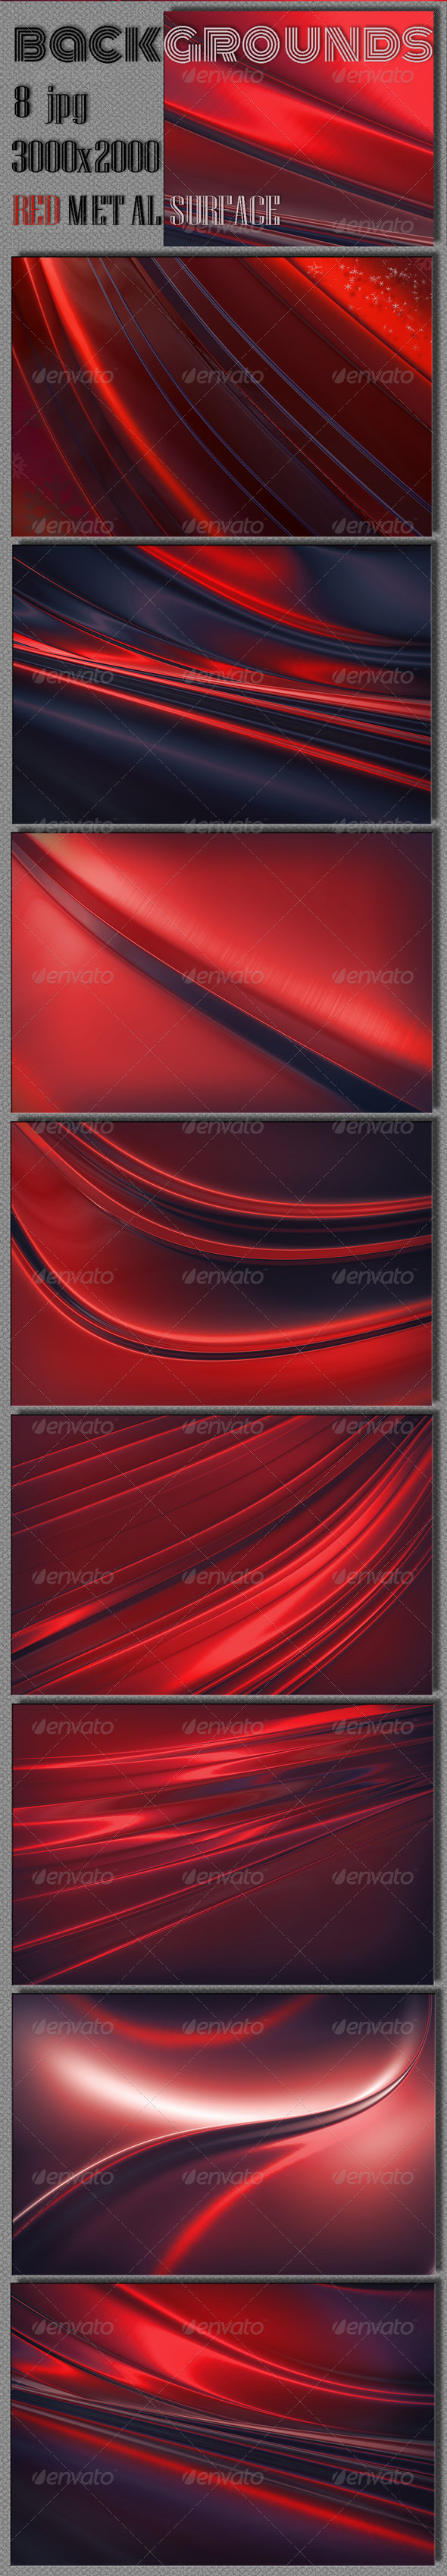 Red Steel Background - Abstract Backgrounds